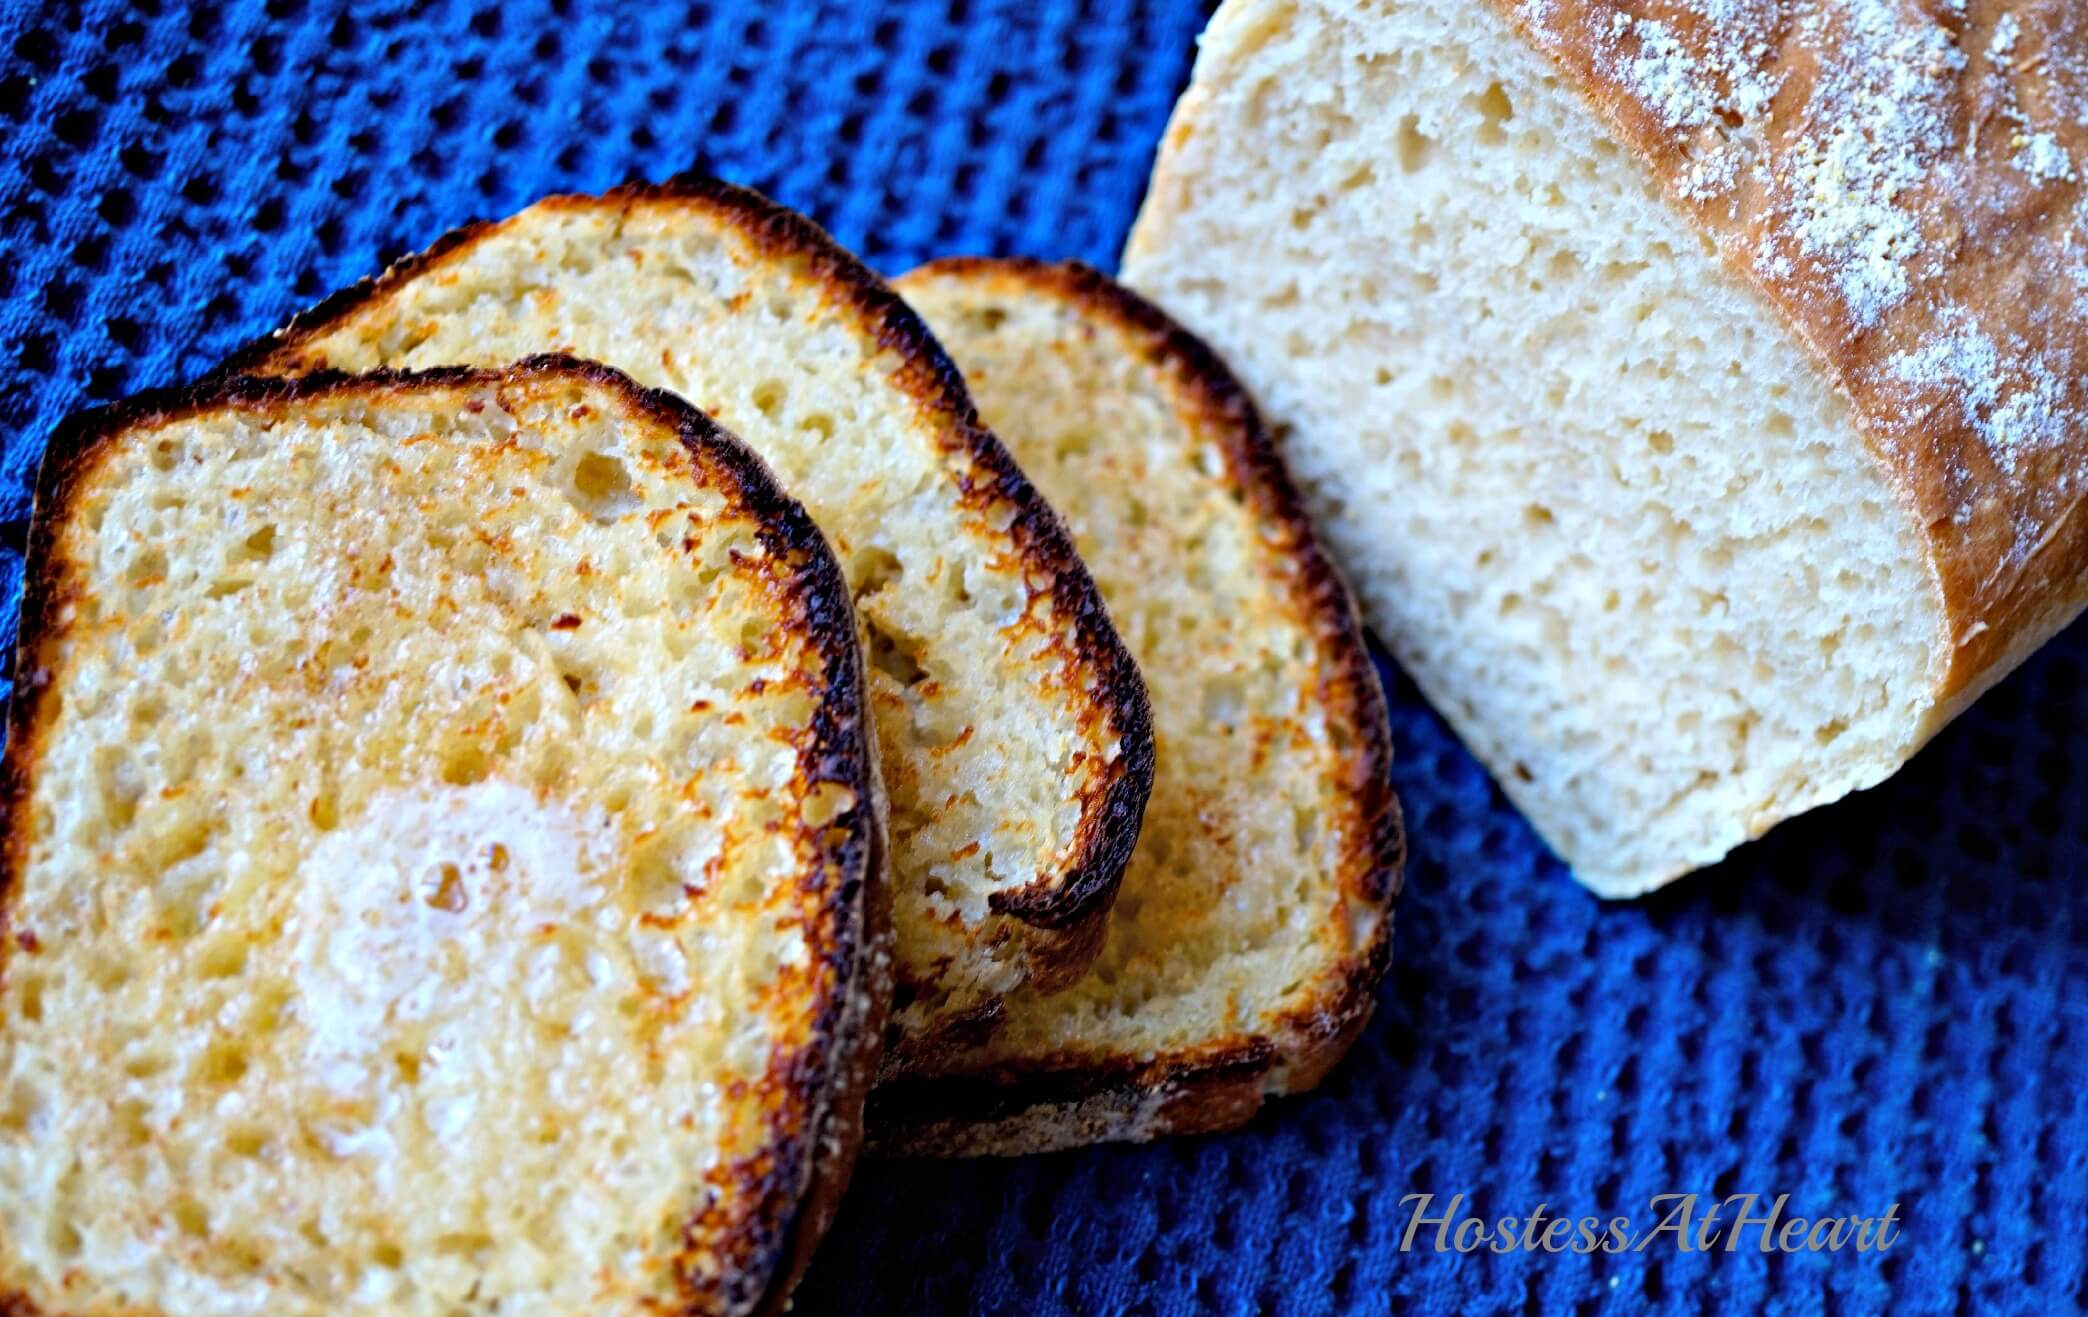 Slices of toasted English Muffin Bread sitting next to the cut loaf.